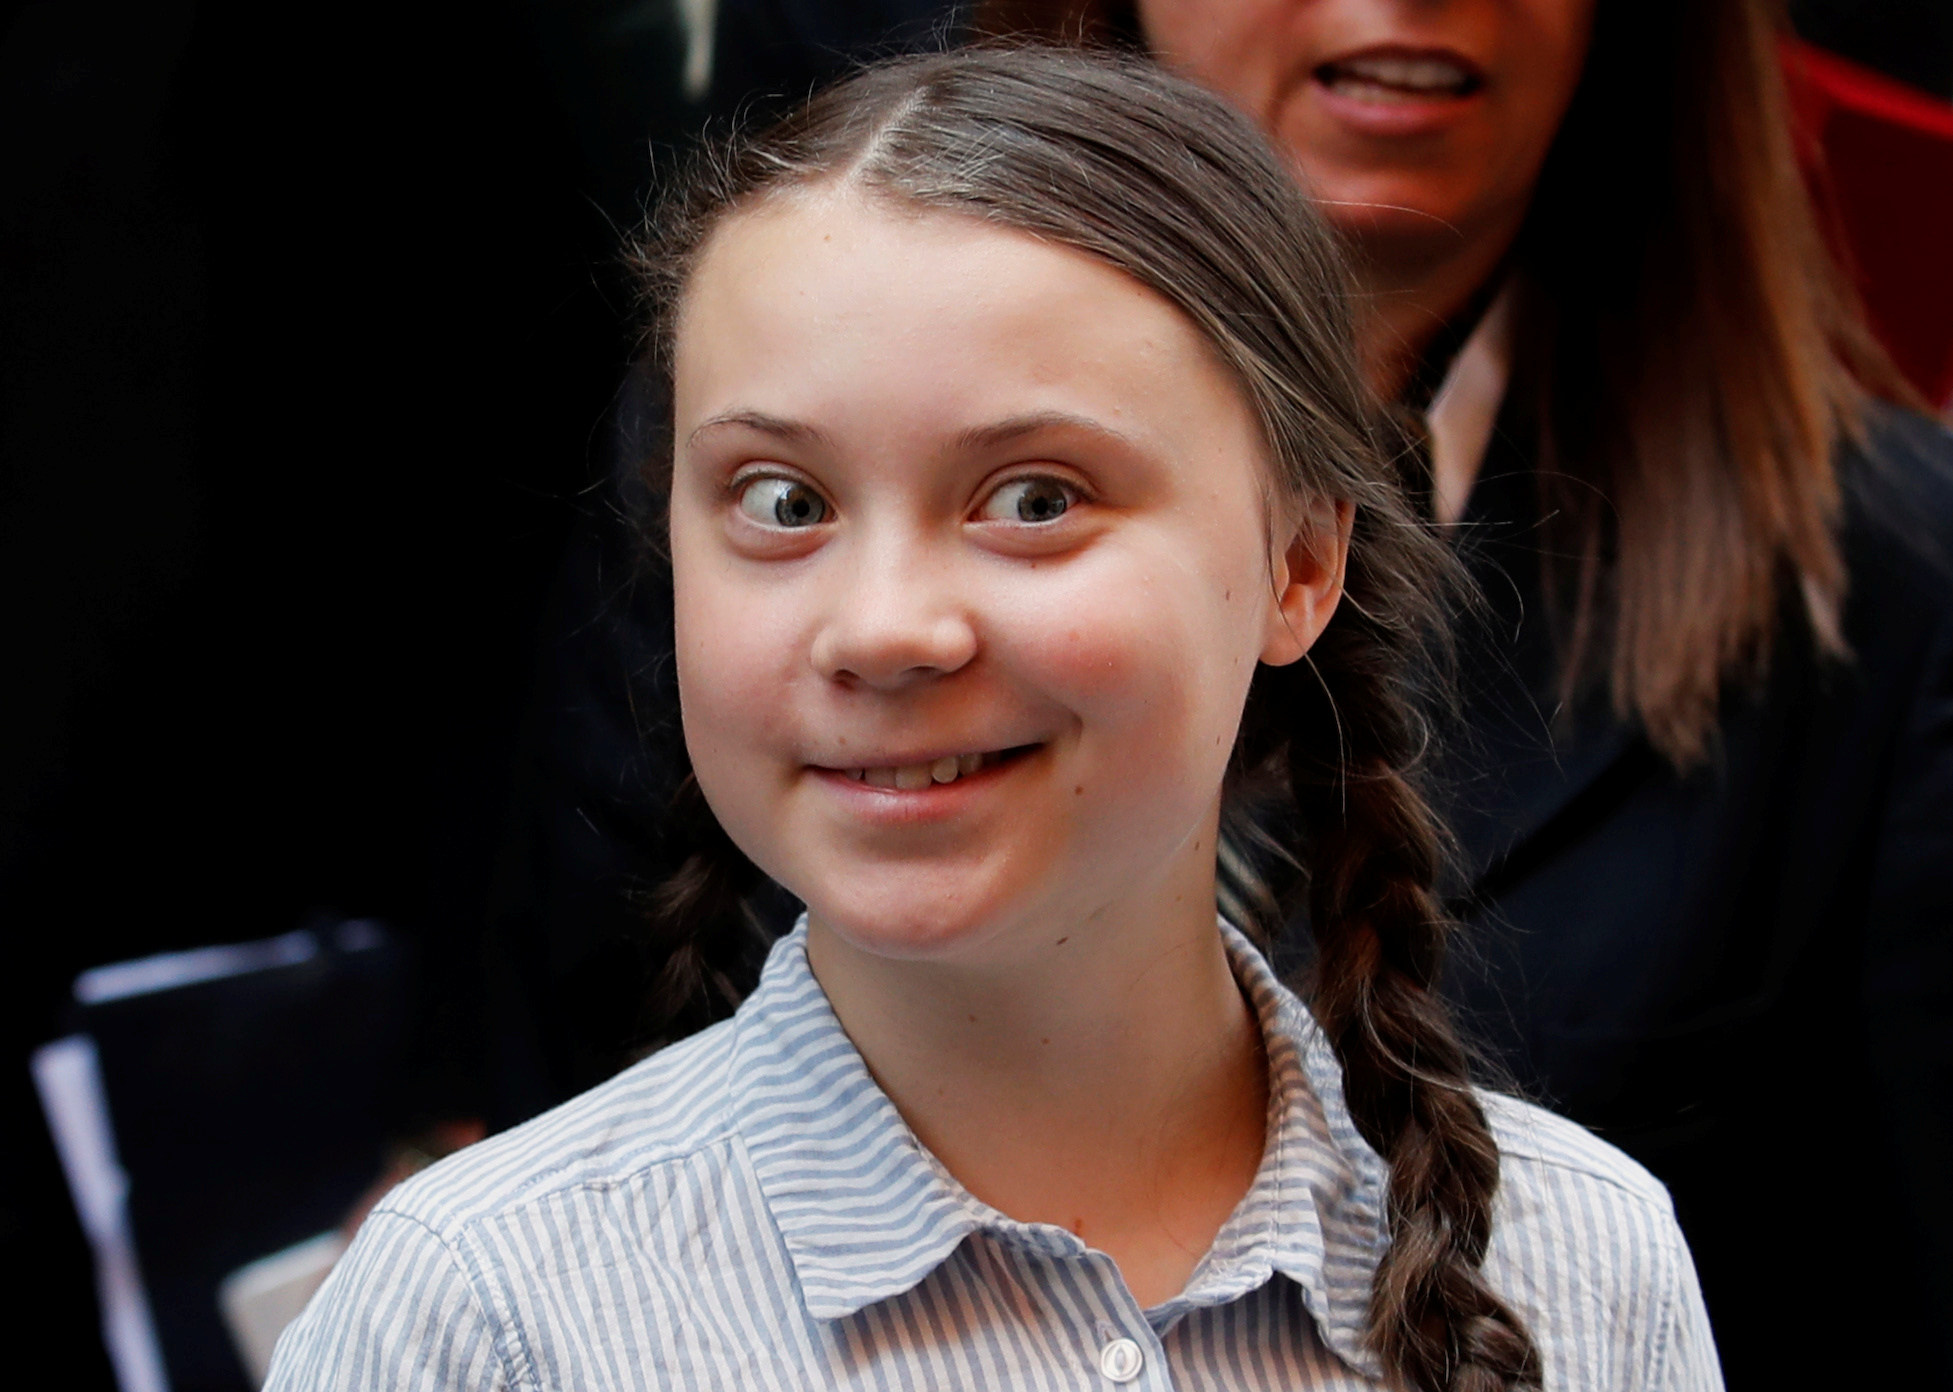 """""""Fridays for Future"""" activist Greta Thunberg leaves after speaking at the Senate in Rome, Italy April 18, 2019. REUTERS/Remo Casilli"""